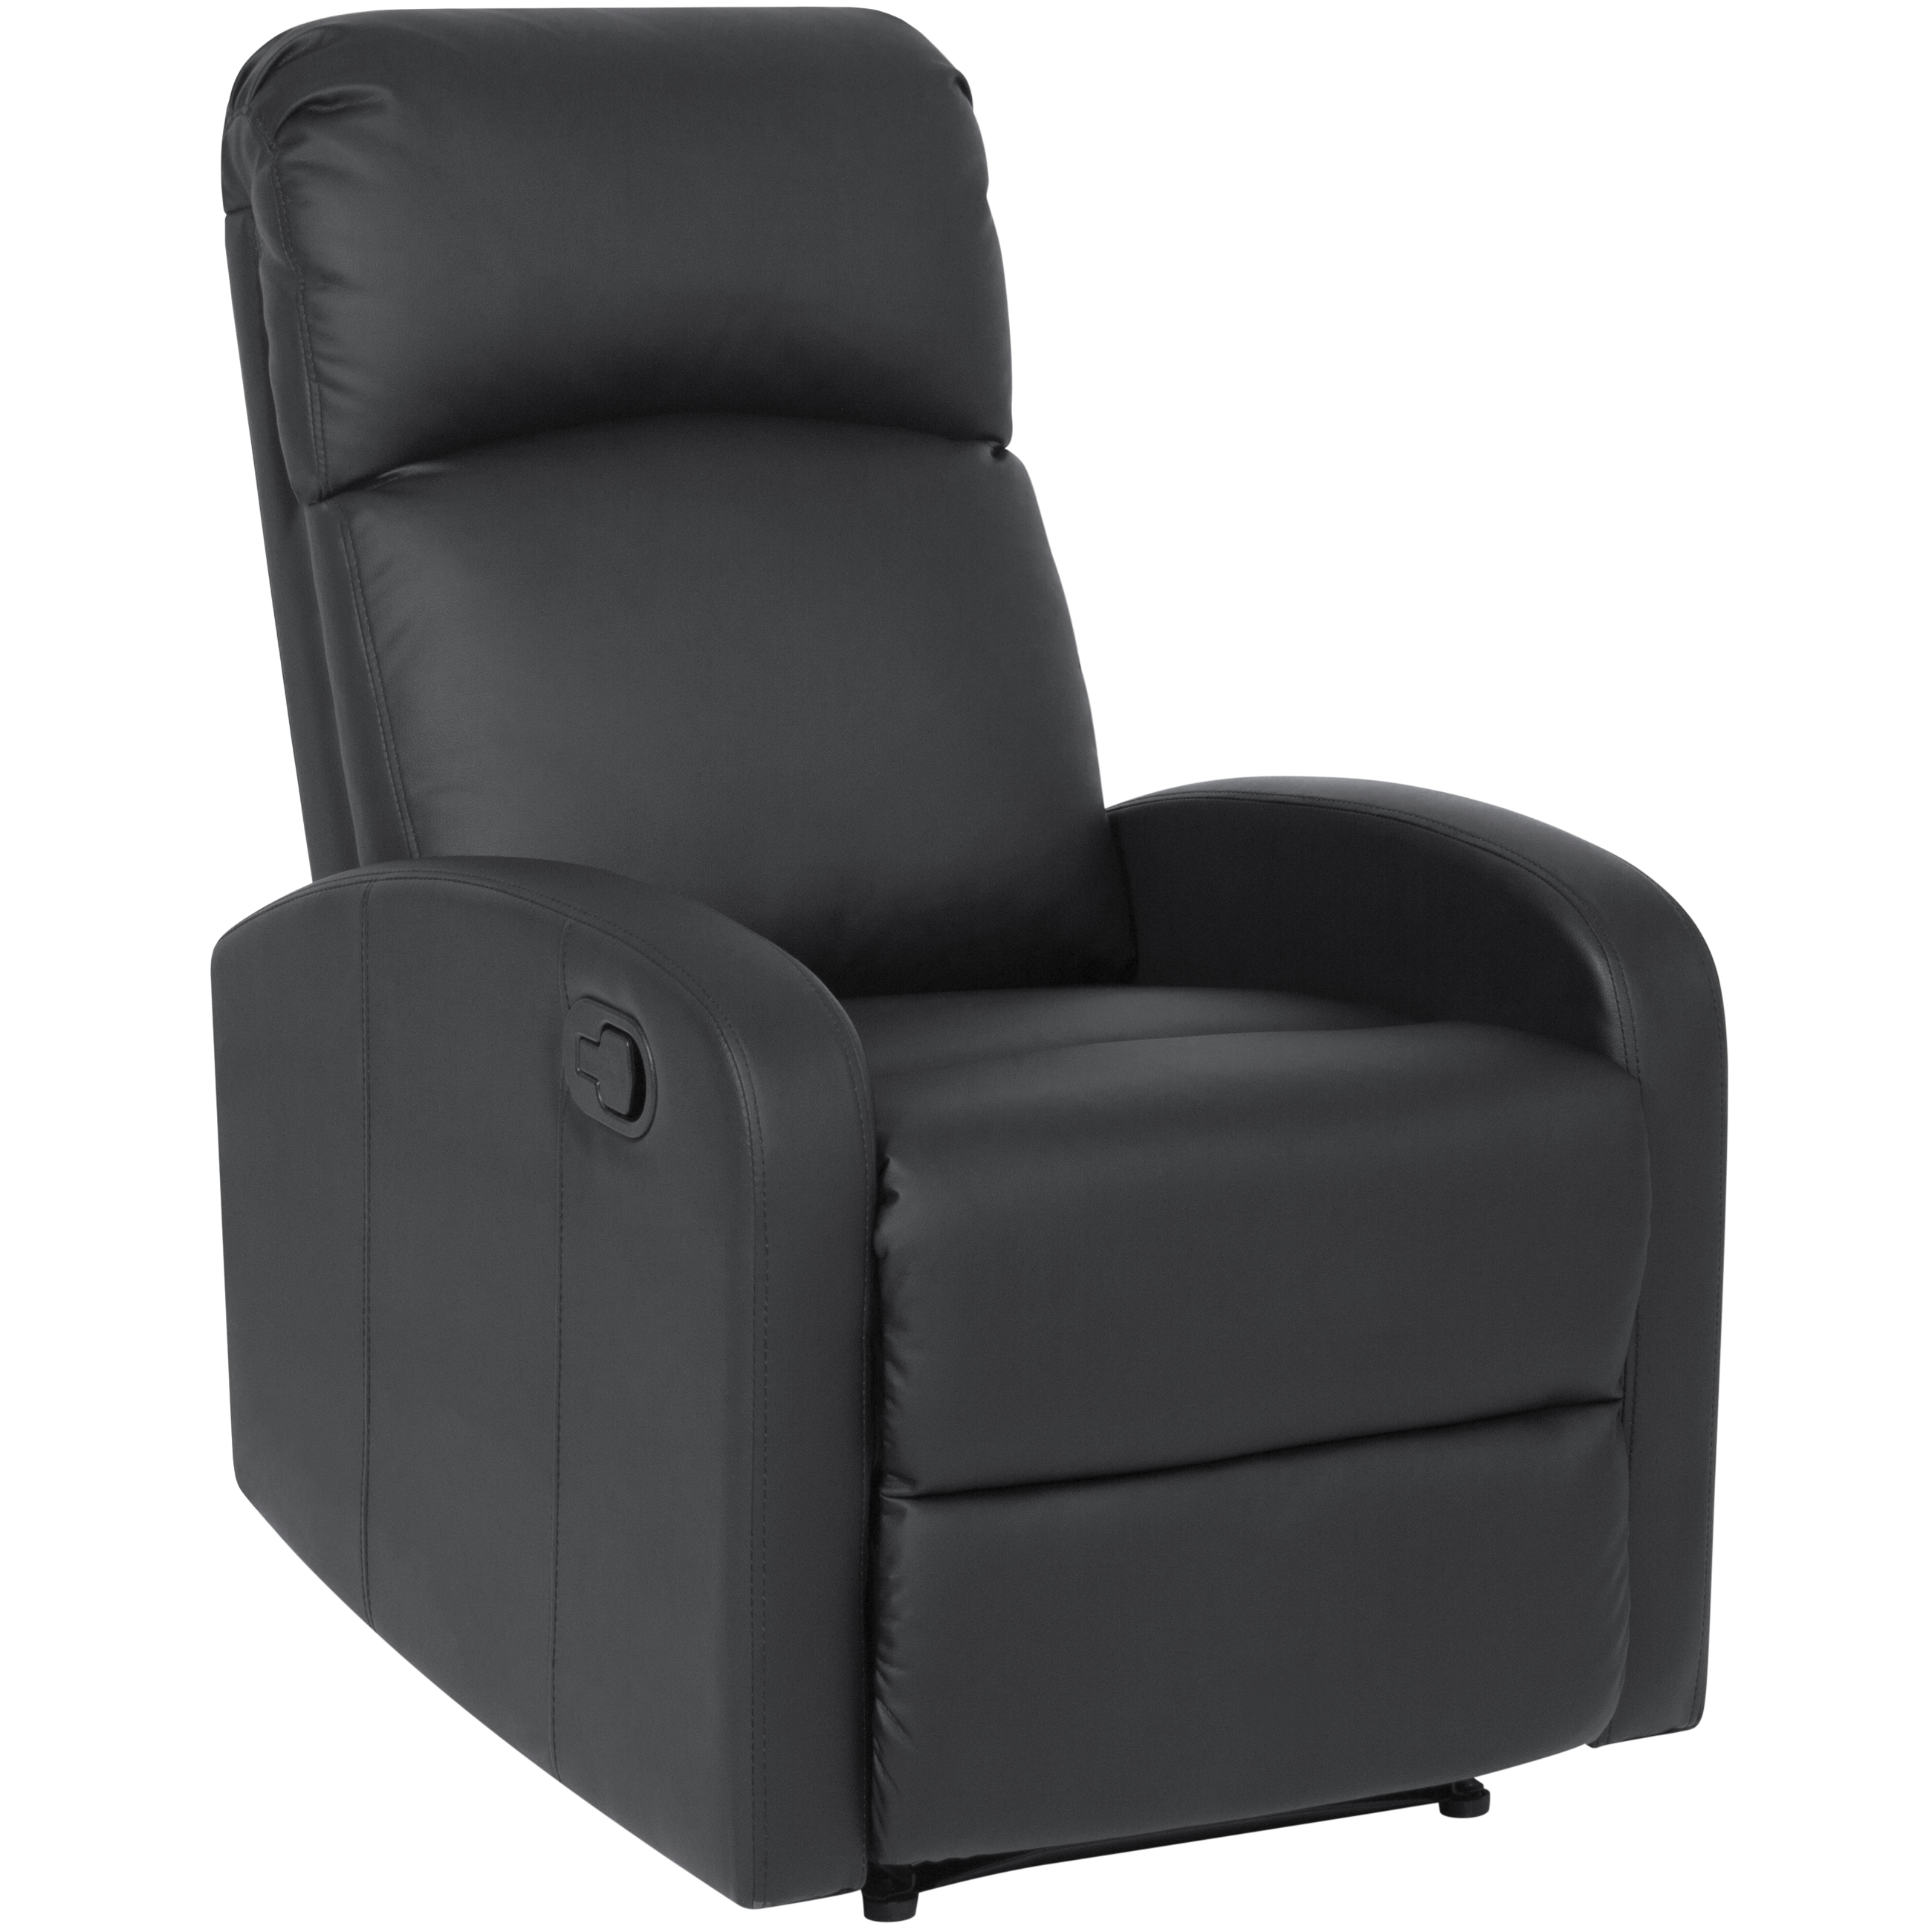 Best Choice Products Home Theater Leather Recliner Chair (Black) by Best Choice Products